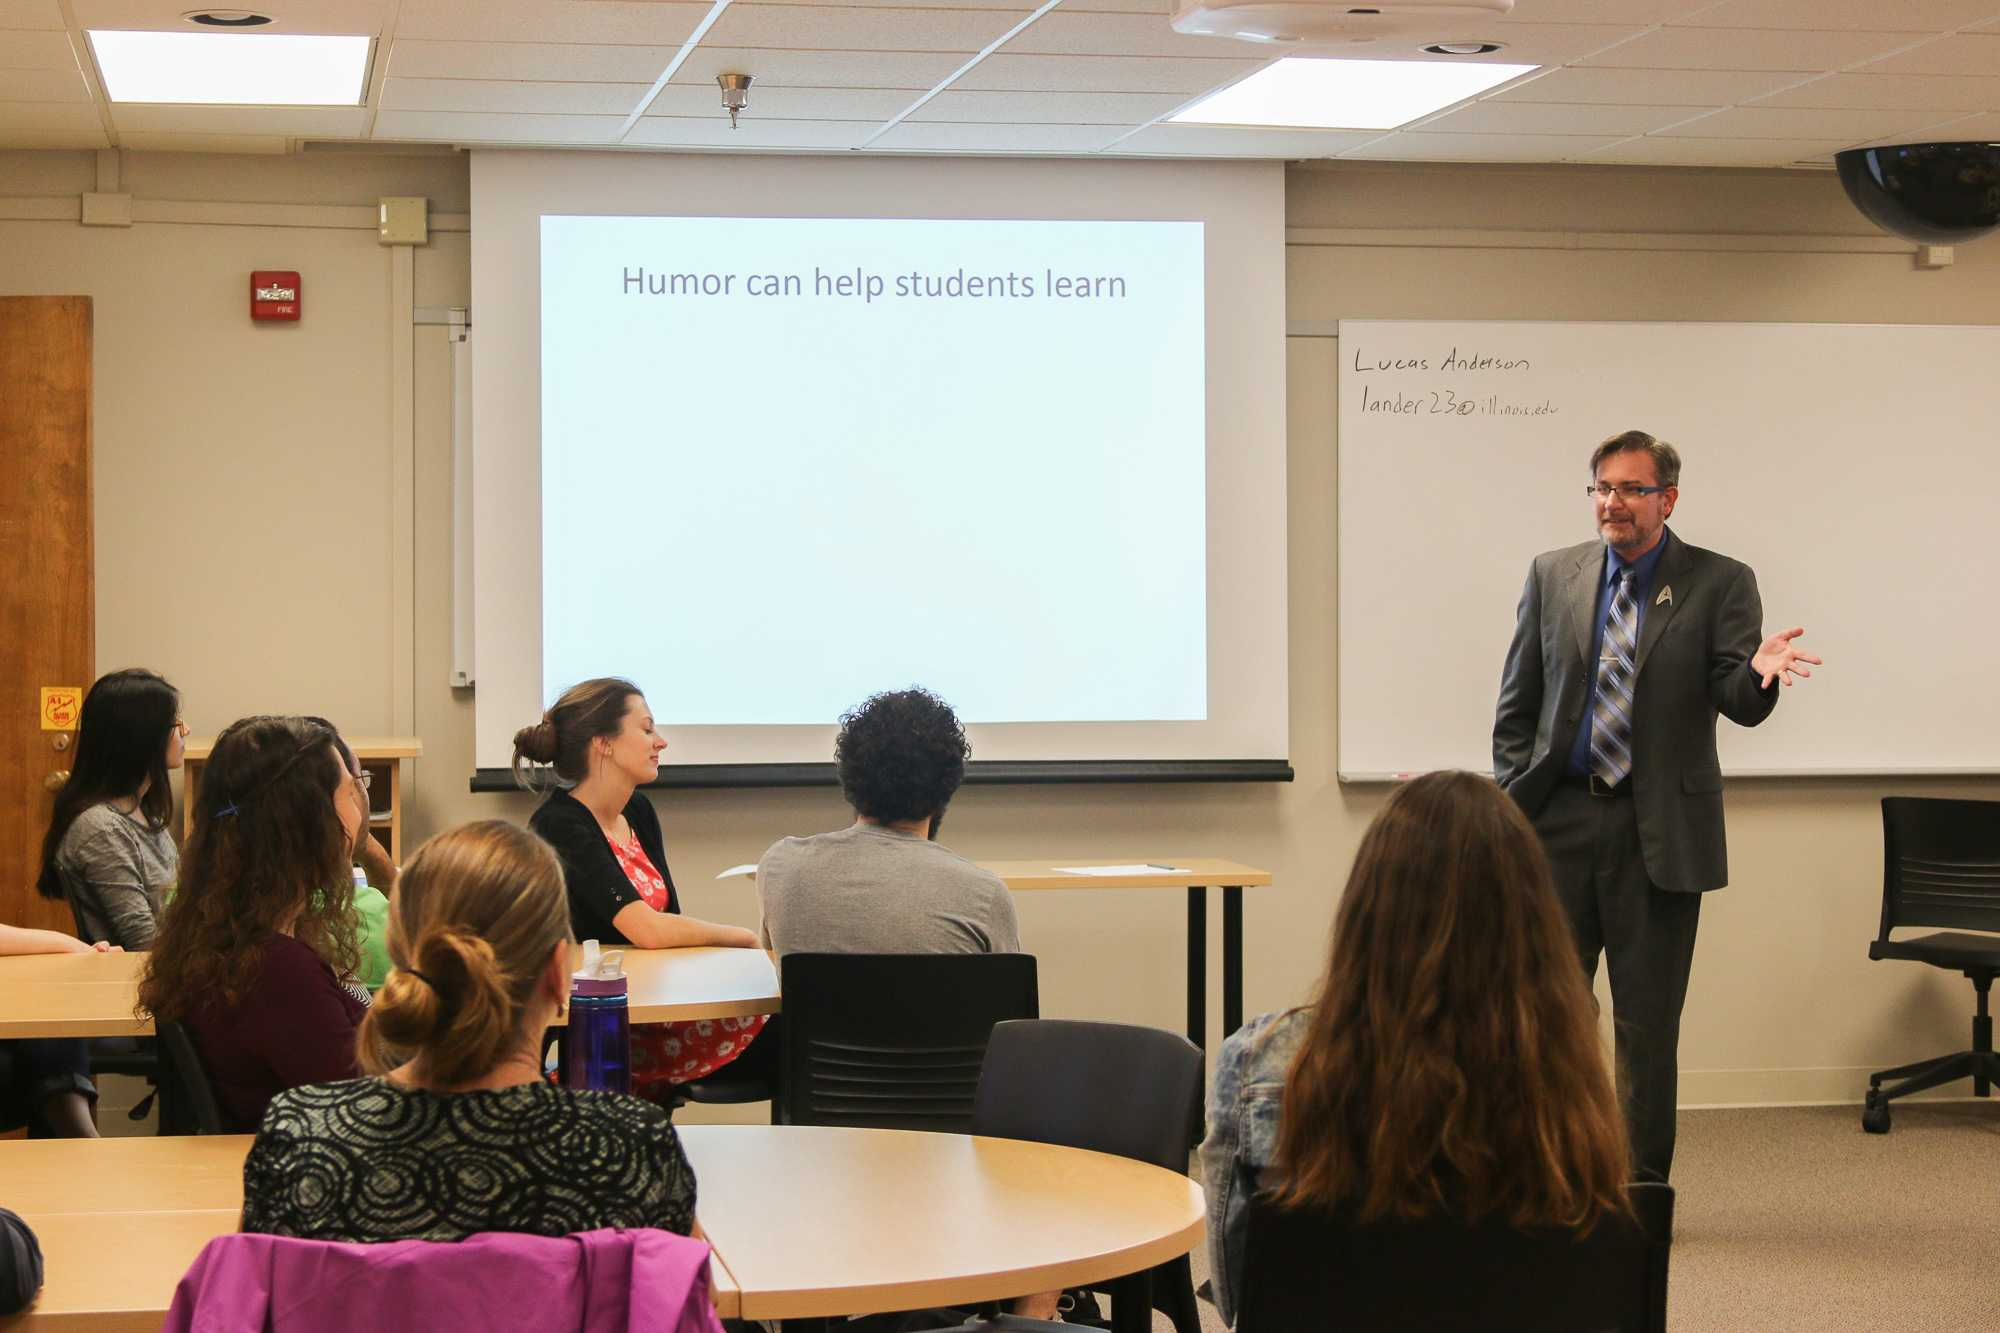 Lucas Anderson, a Specialist in Education and part of The Center for Innovation in Teaching and Learning, presented Make 'em laugh, a workshop on the usage of humor in classrooms on Monday, October 17th 2016.